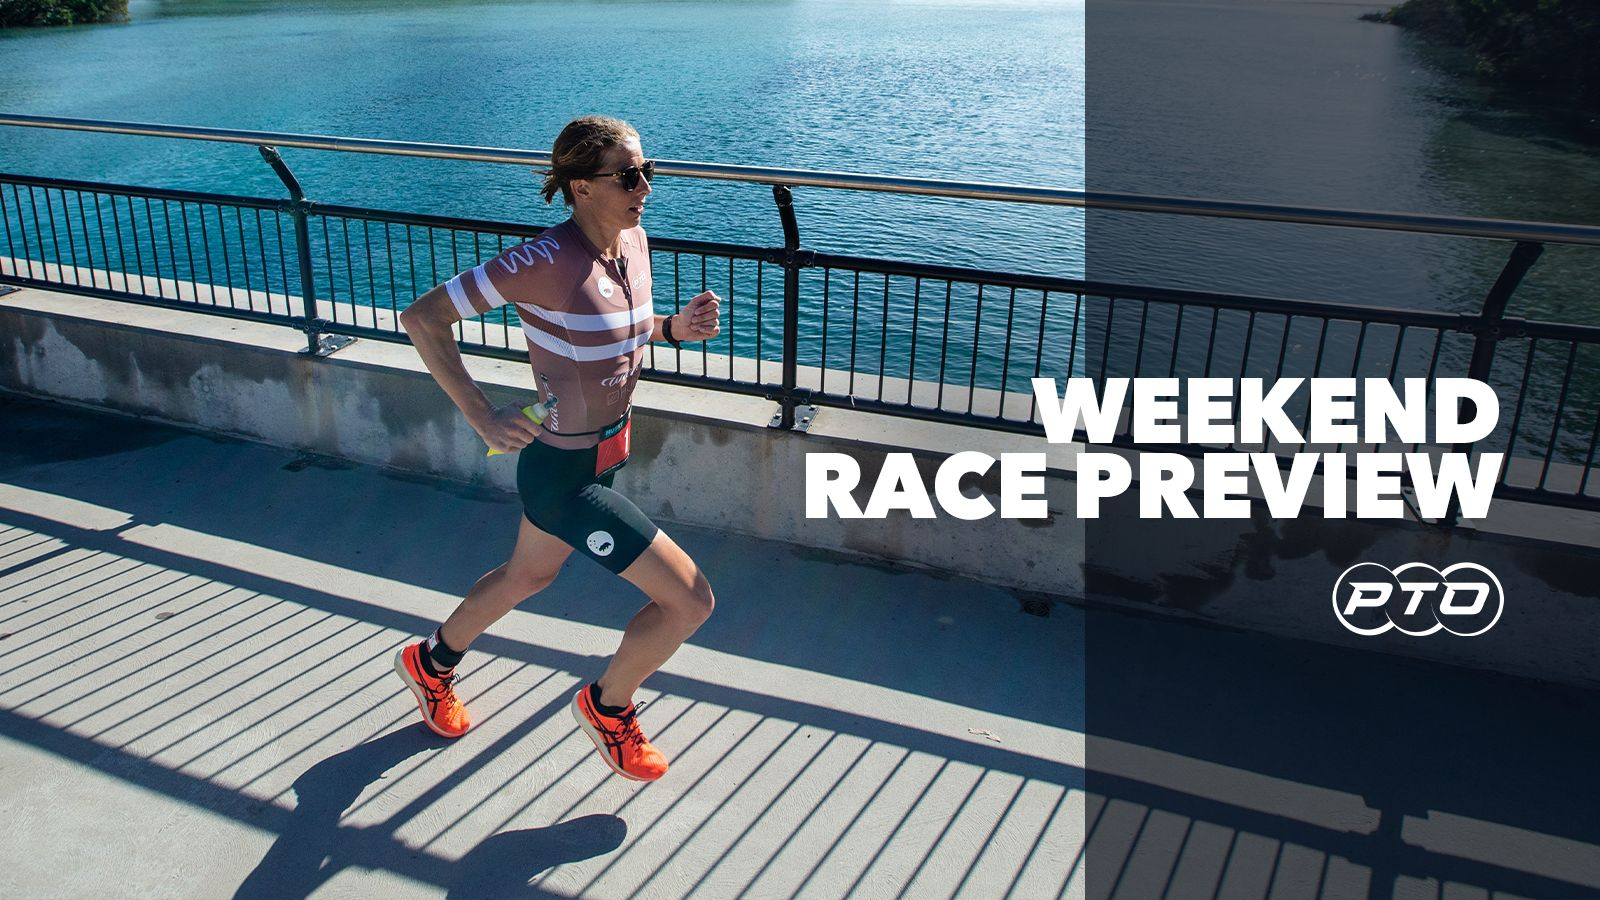 Weekend Race Preview